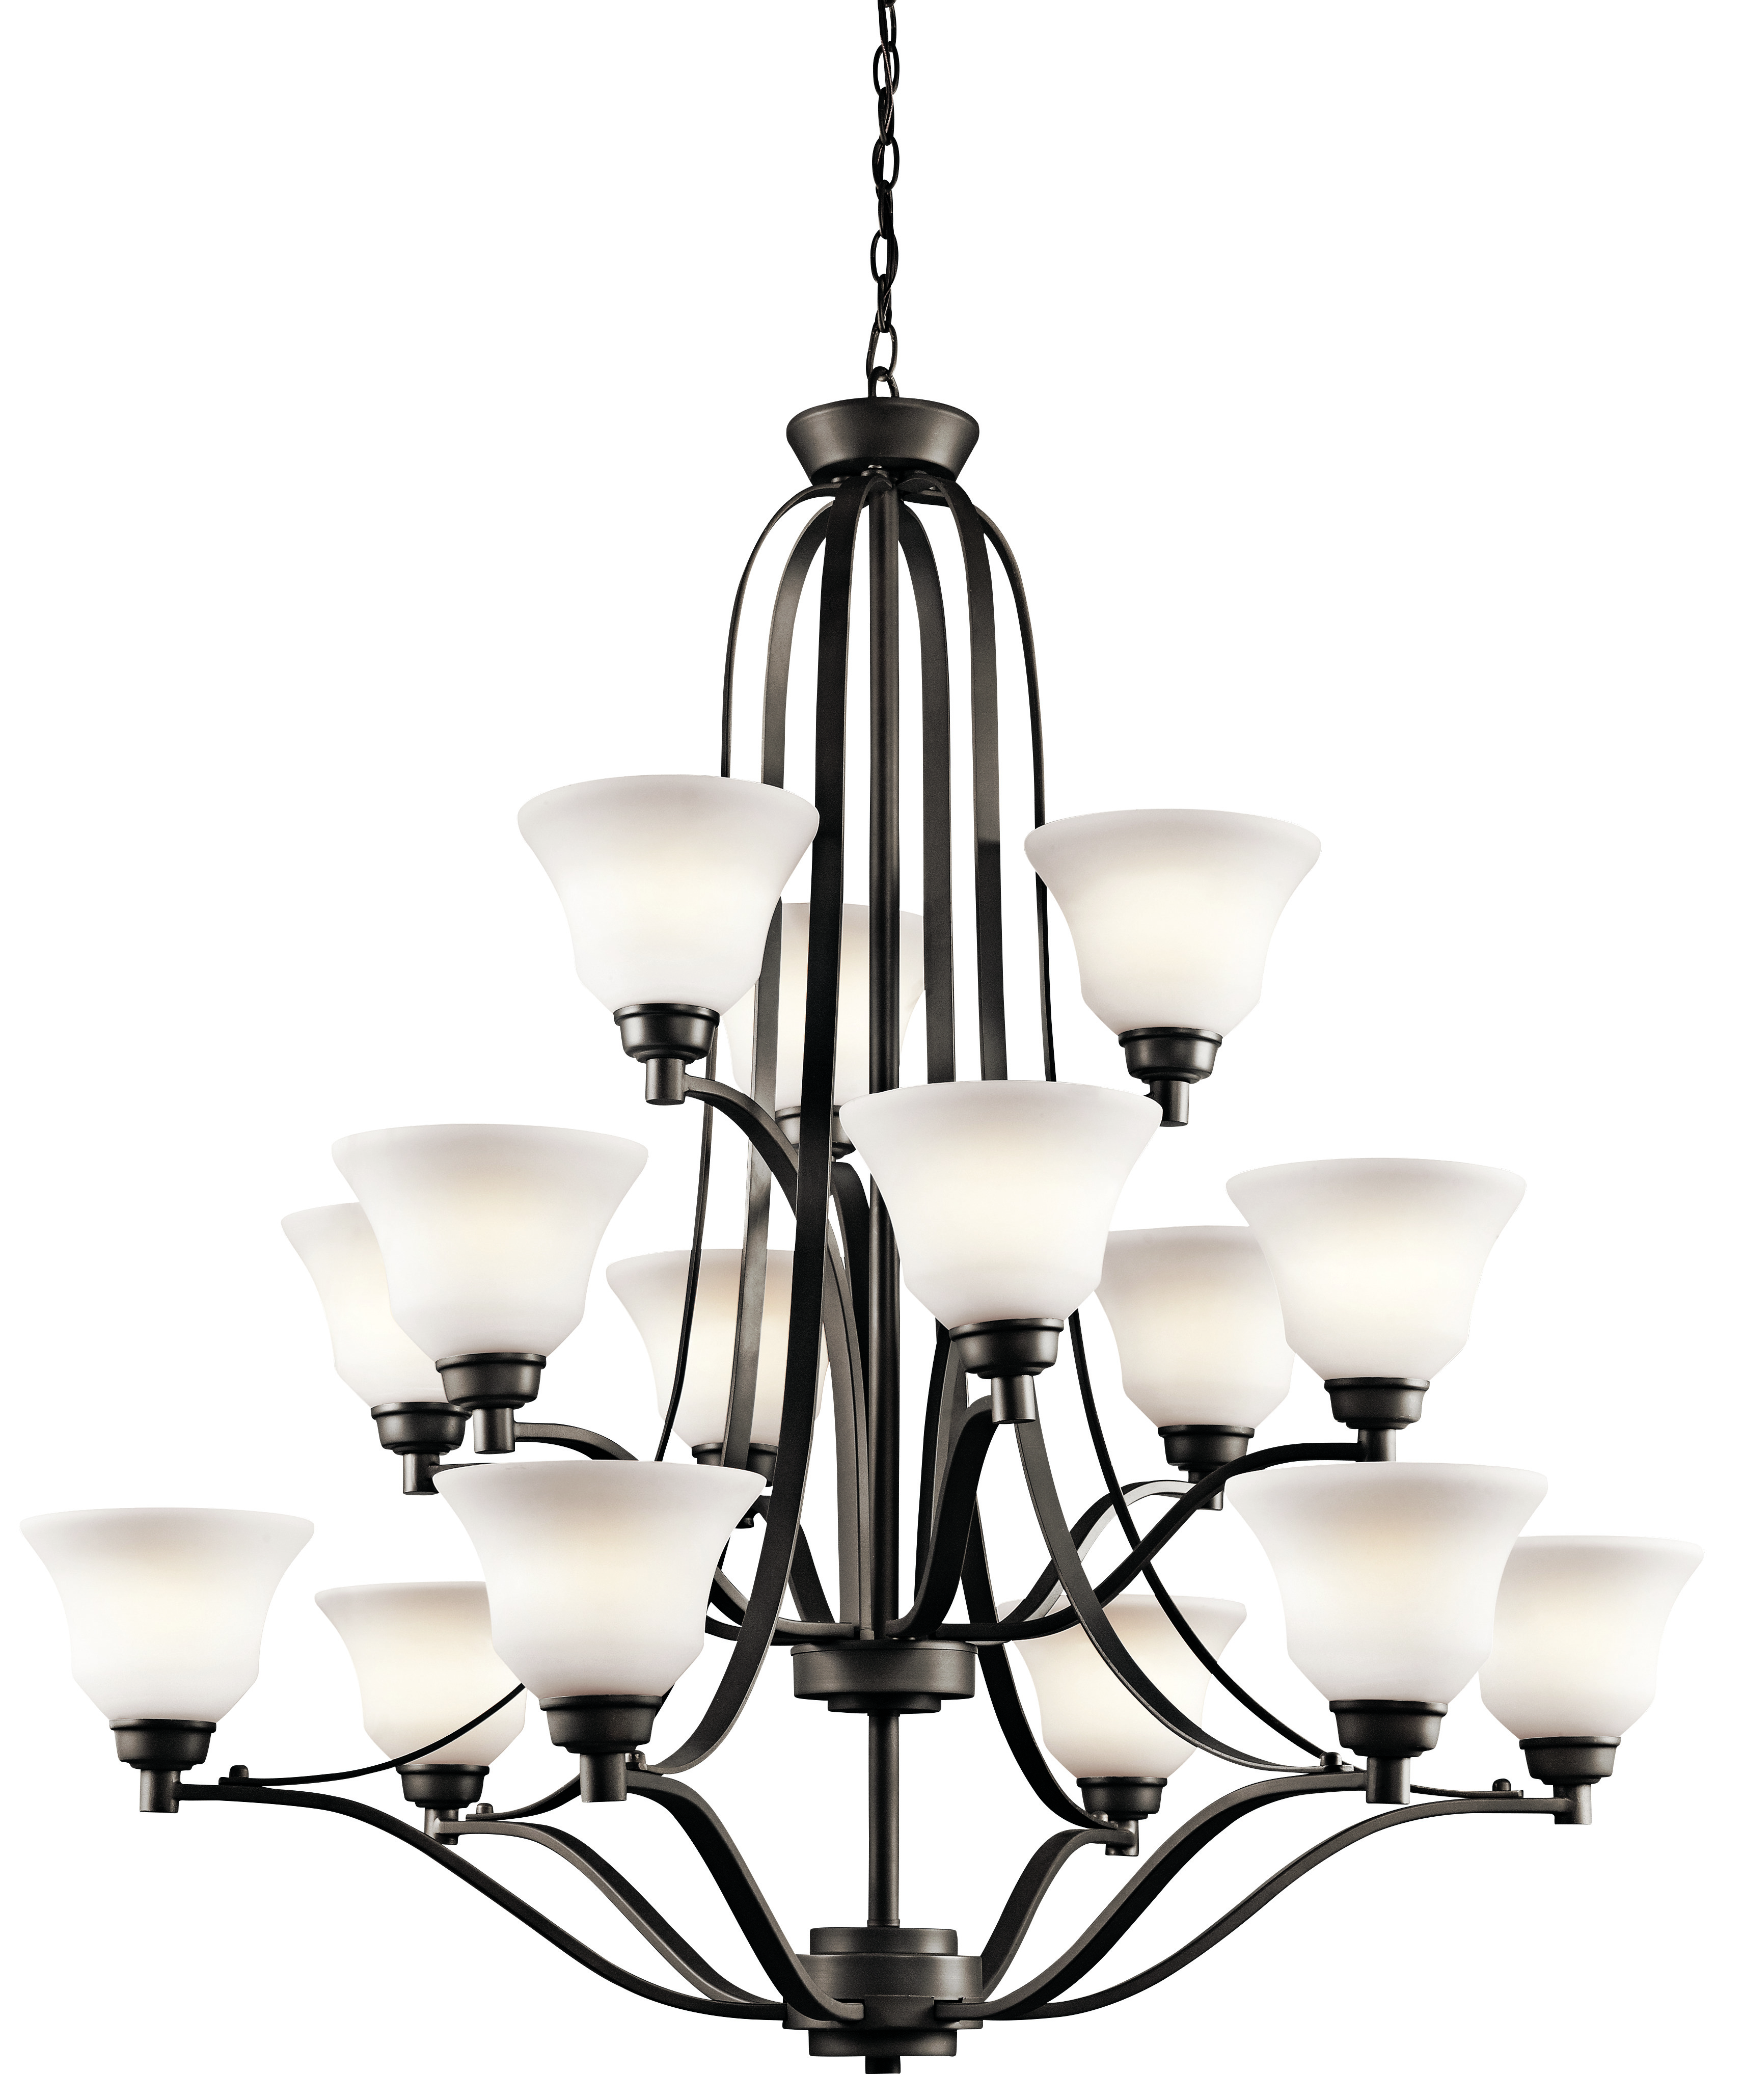 Kichler Langford LED Chandelier with Satin Etched White Shade - Olde Bronze (1789OZL16)